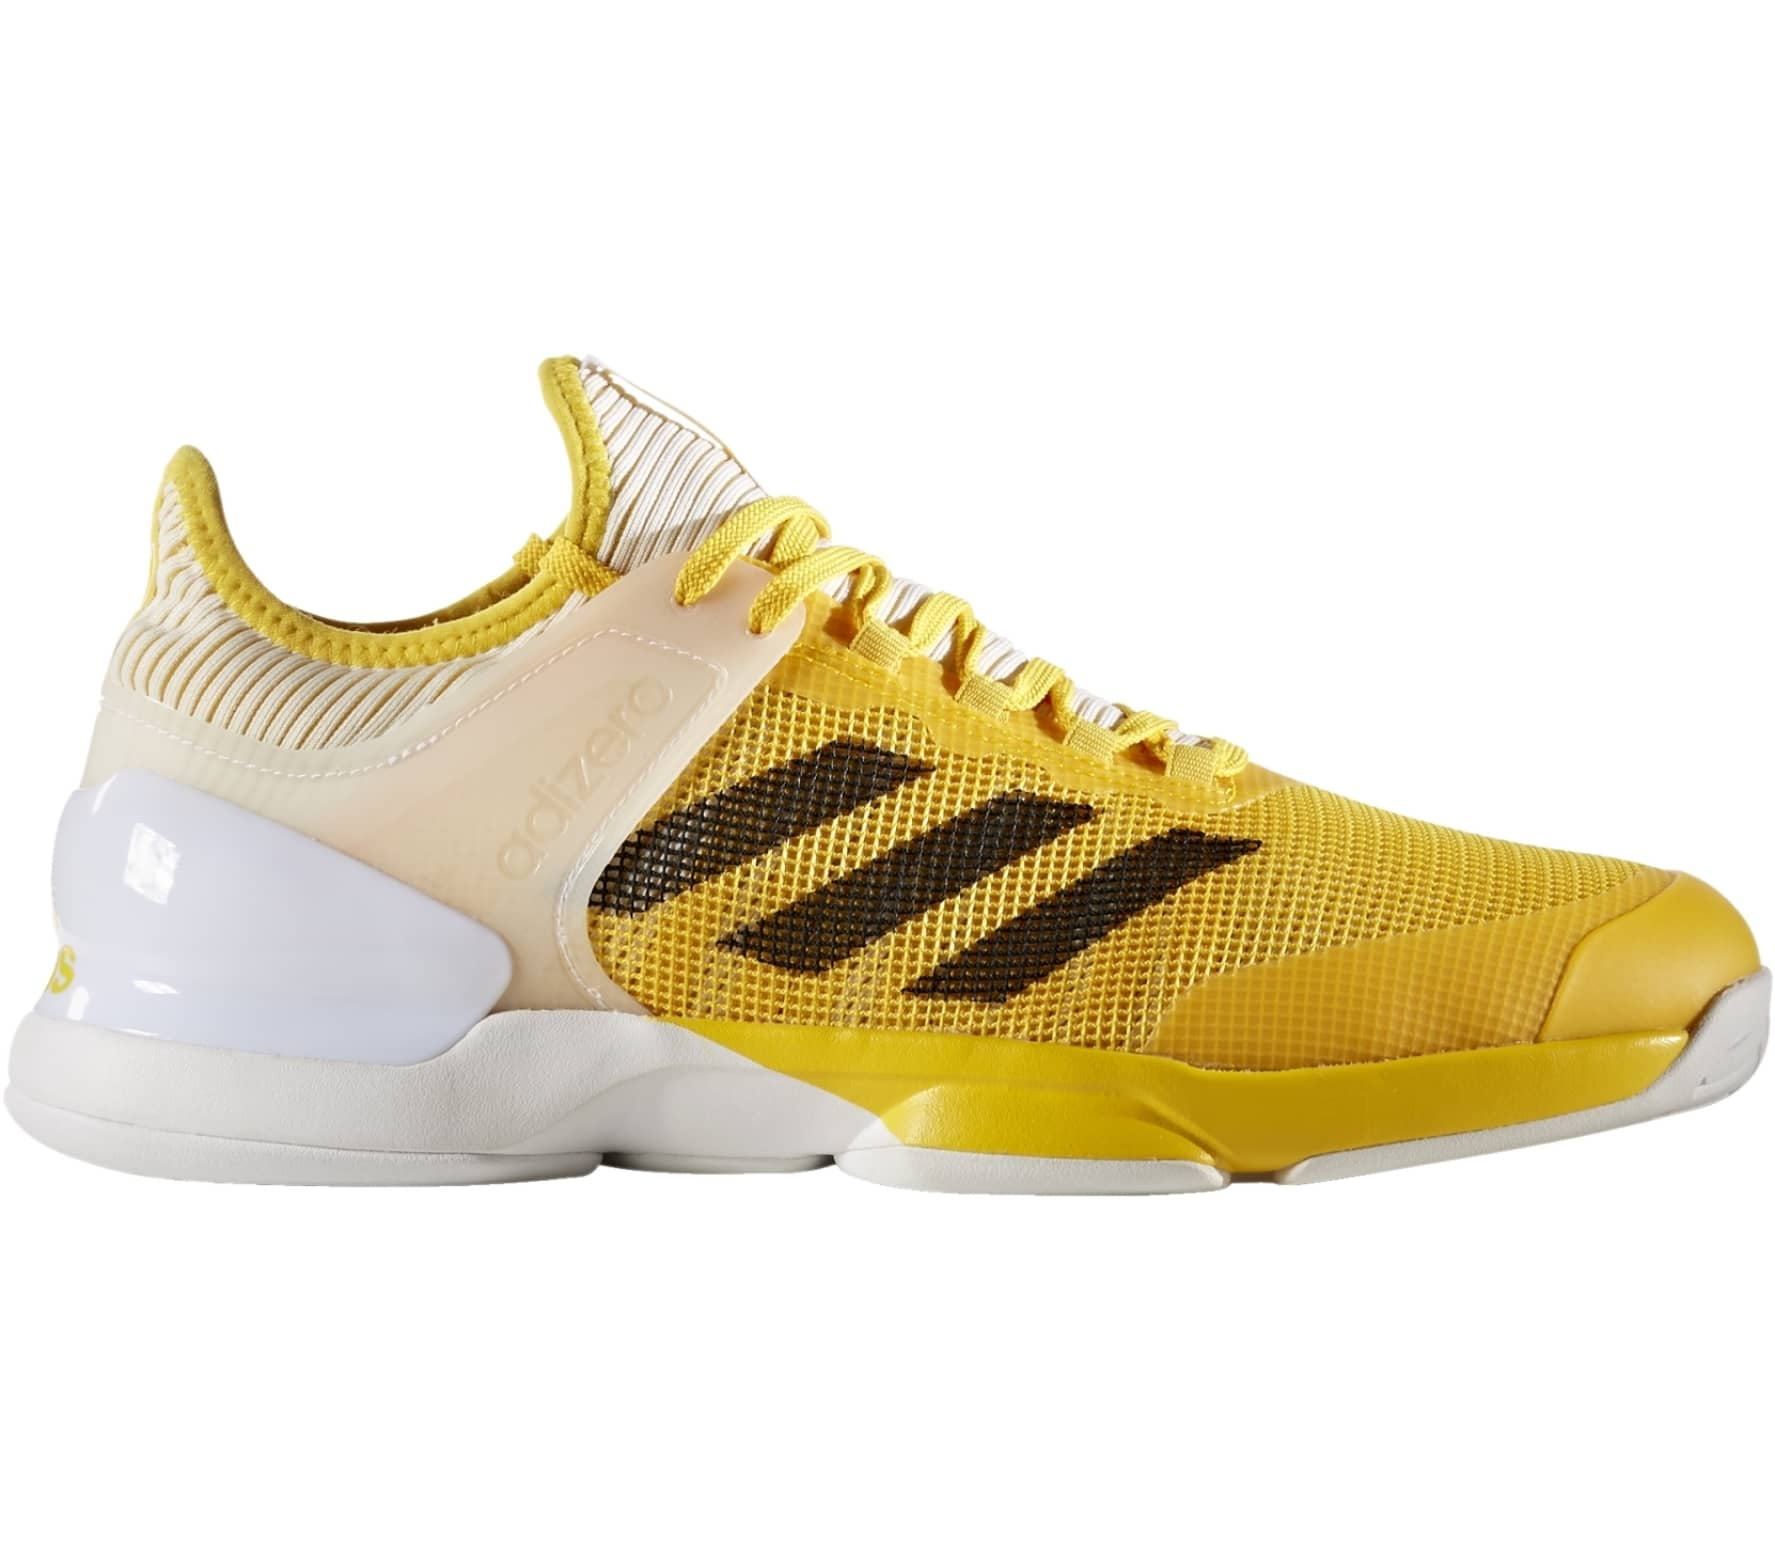 Adidas - Adizero Ubersonic 2 men s tennis shoes (yellow white) - buy ... 8c44dd62c